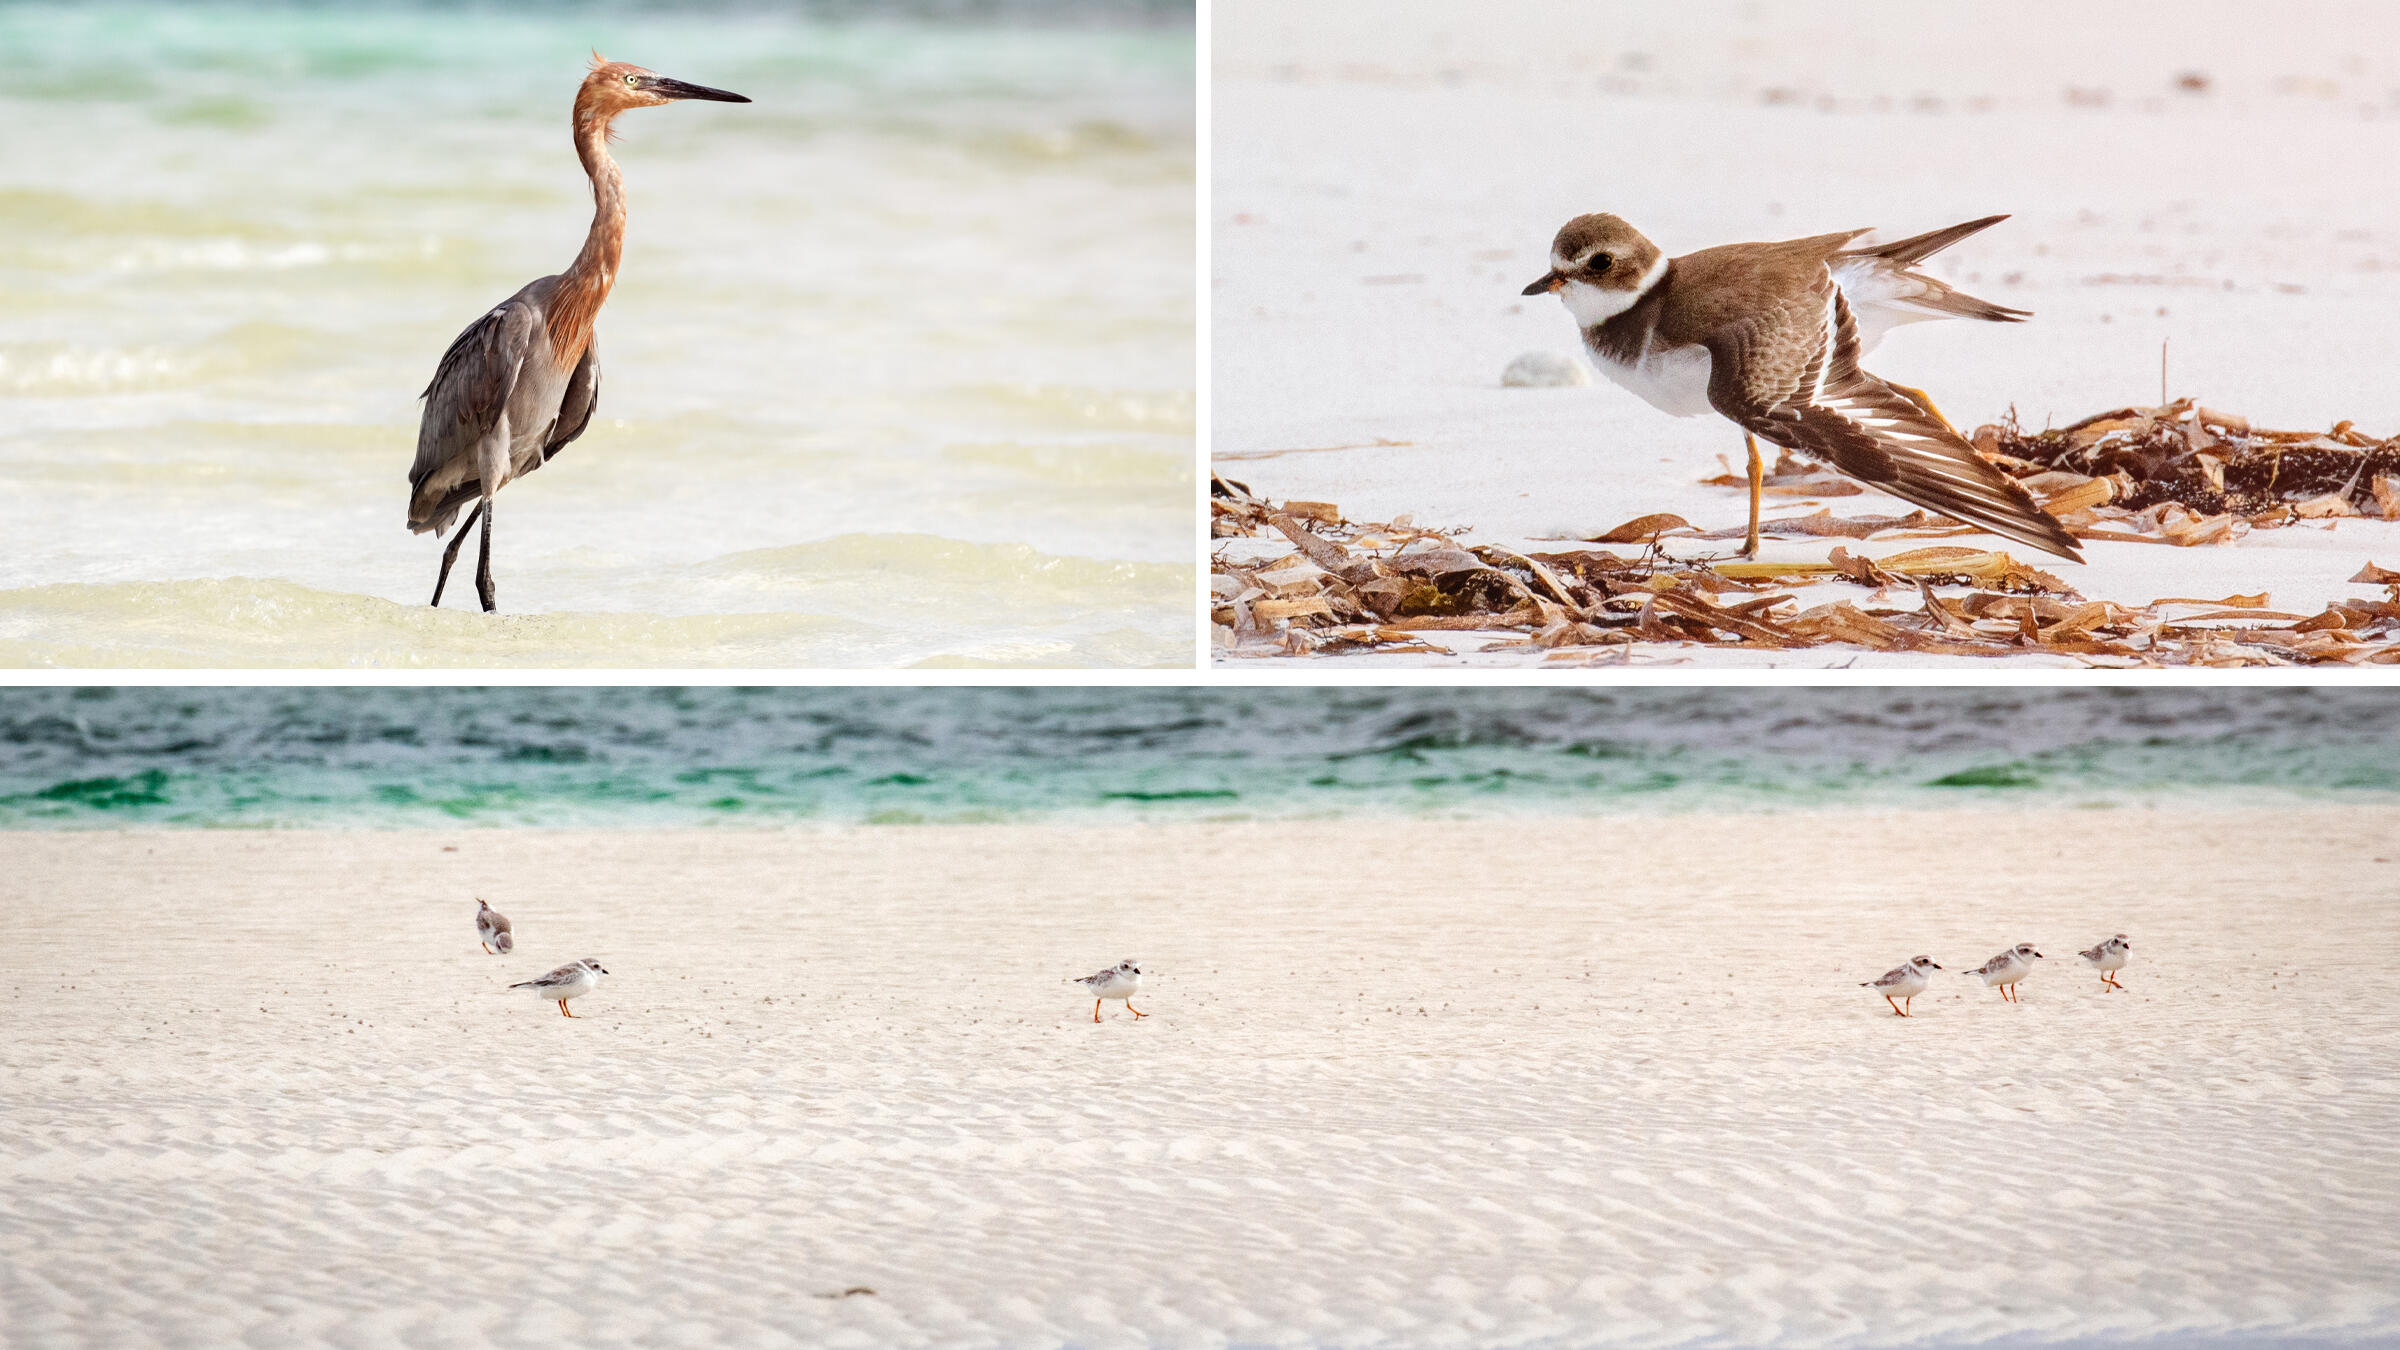 Top Left: Reddish Egret. Top Right: Semipalmated plover. Bottom: Group of Piping Plovers on a tidal flat. Mike Fernandez/Audubon